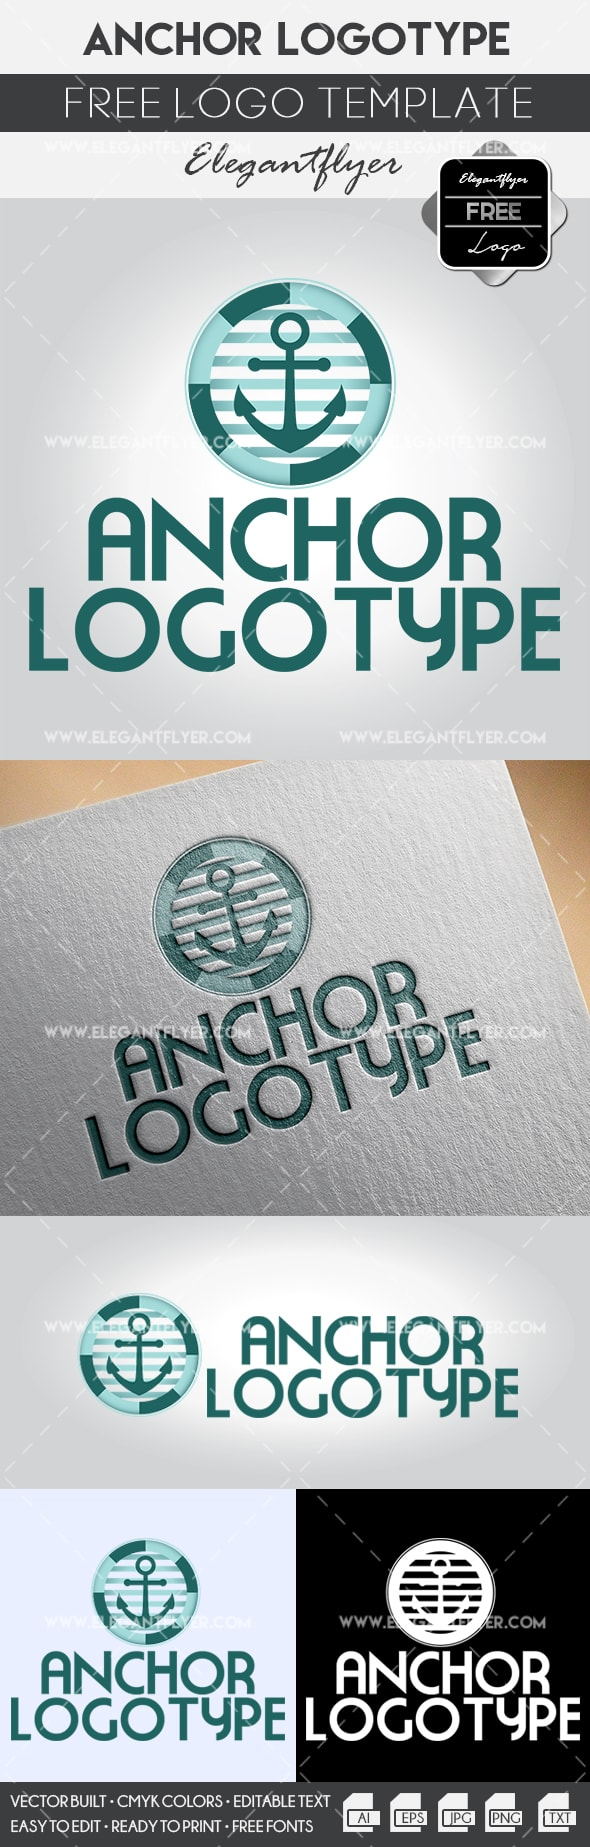 Anchor – Free Logo Template